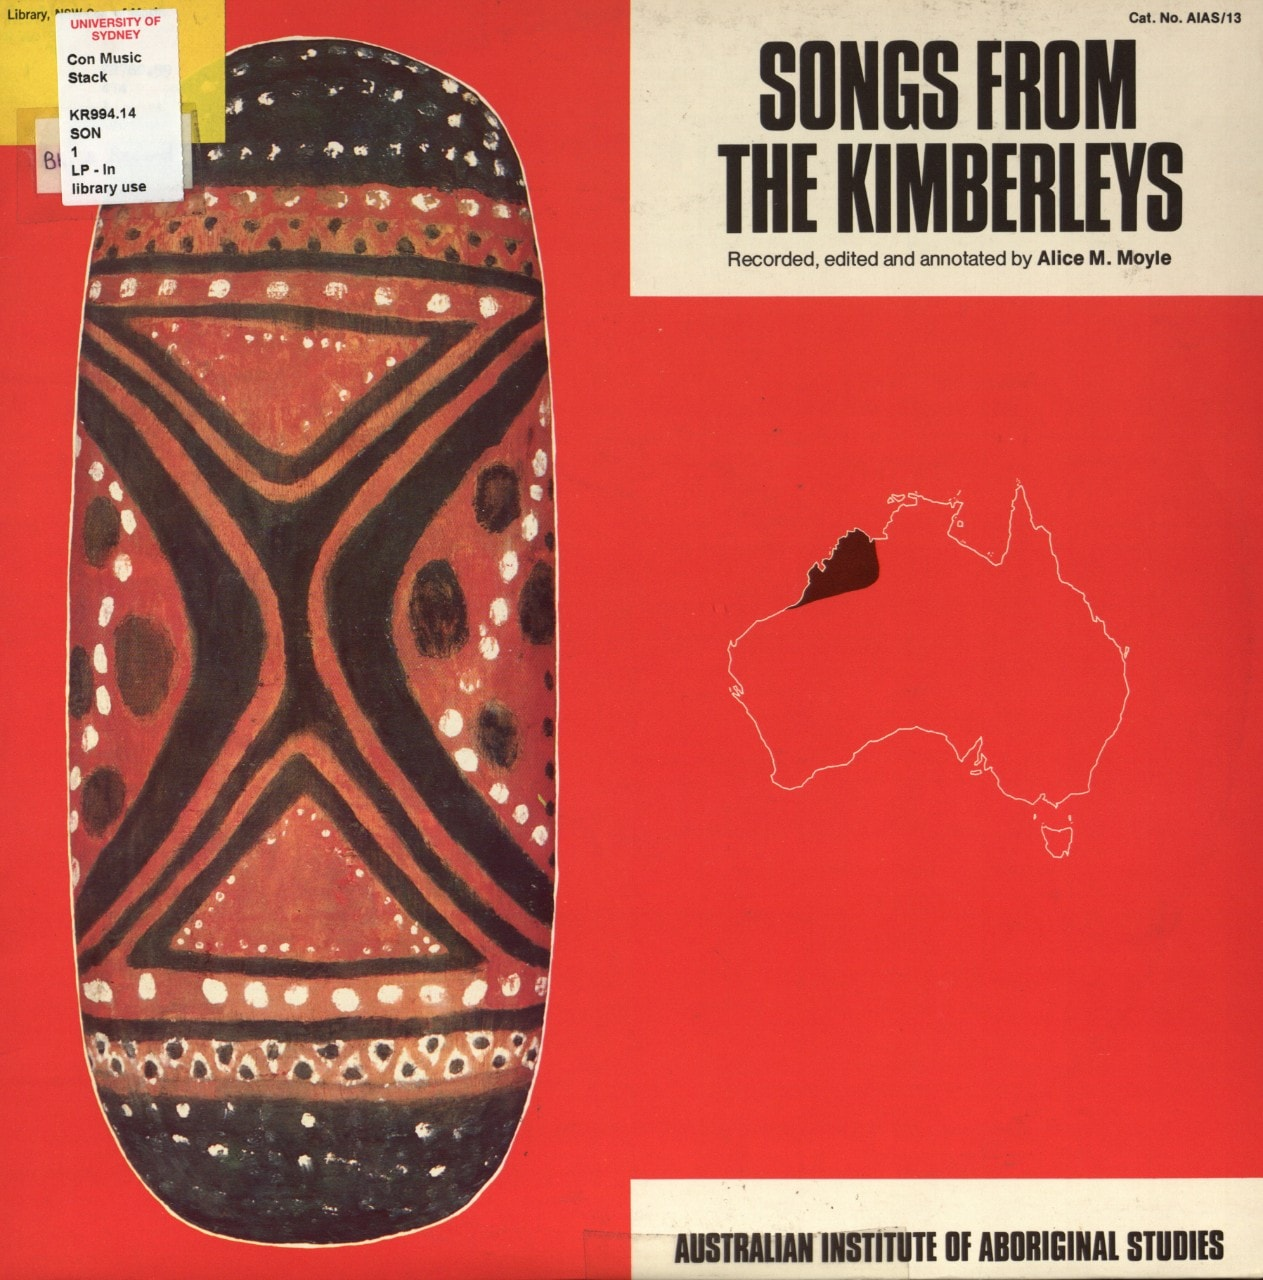 Album cover of vinyl recording 'Songs from the Kimberleys', recorded and edited by Alice M. Moyle. 1977